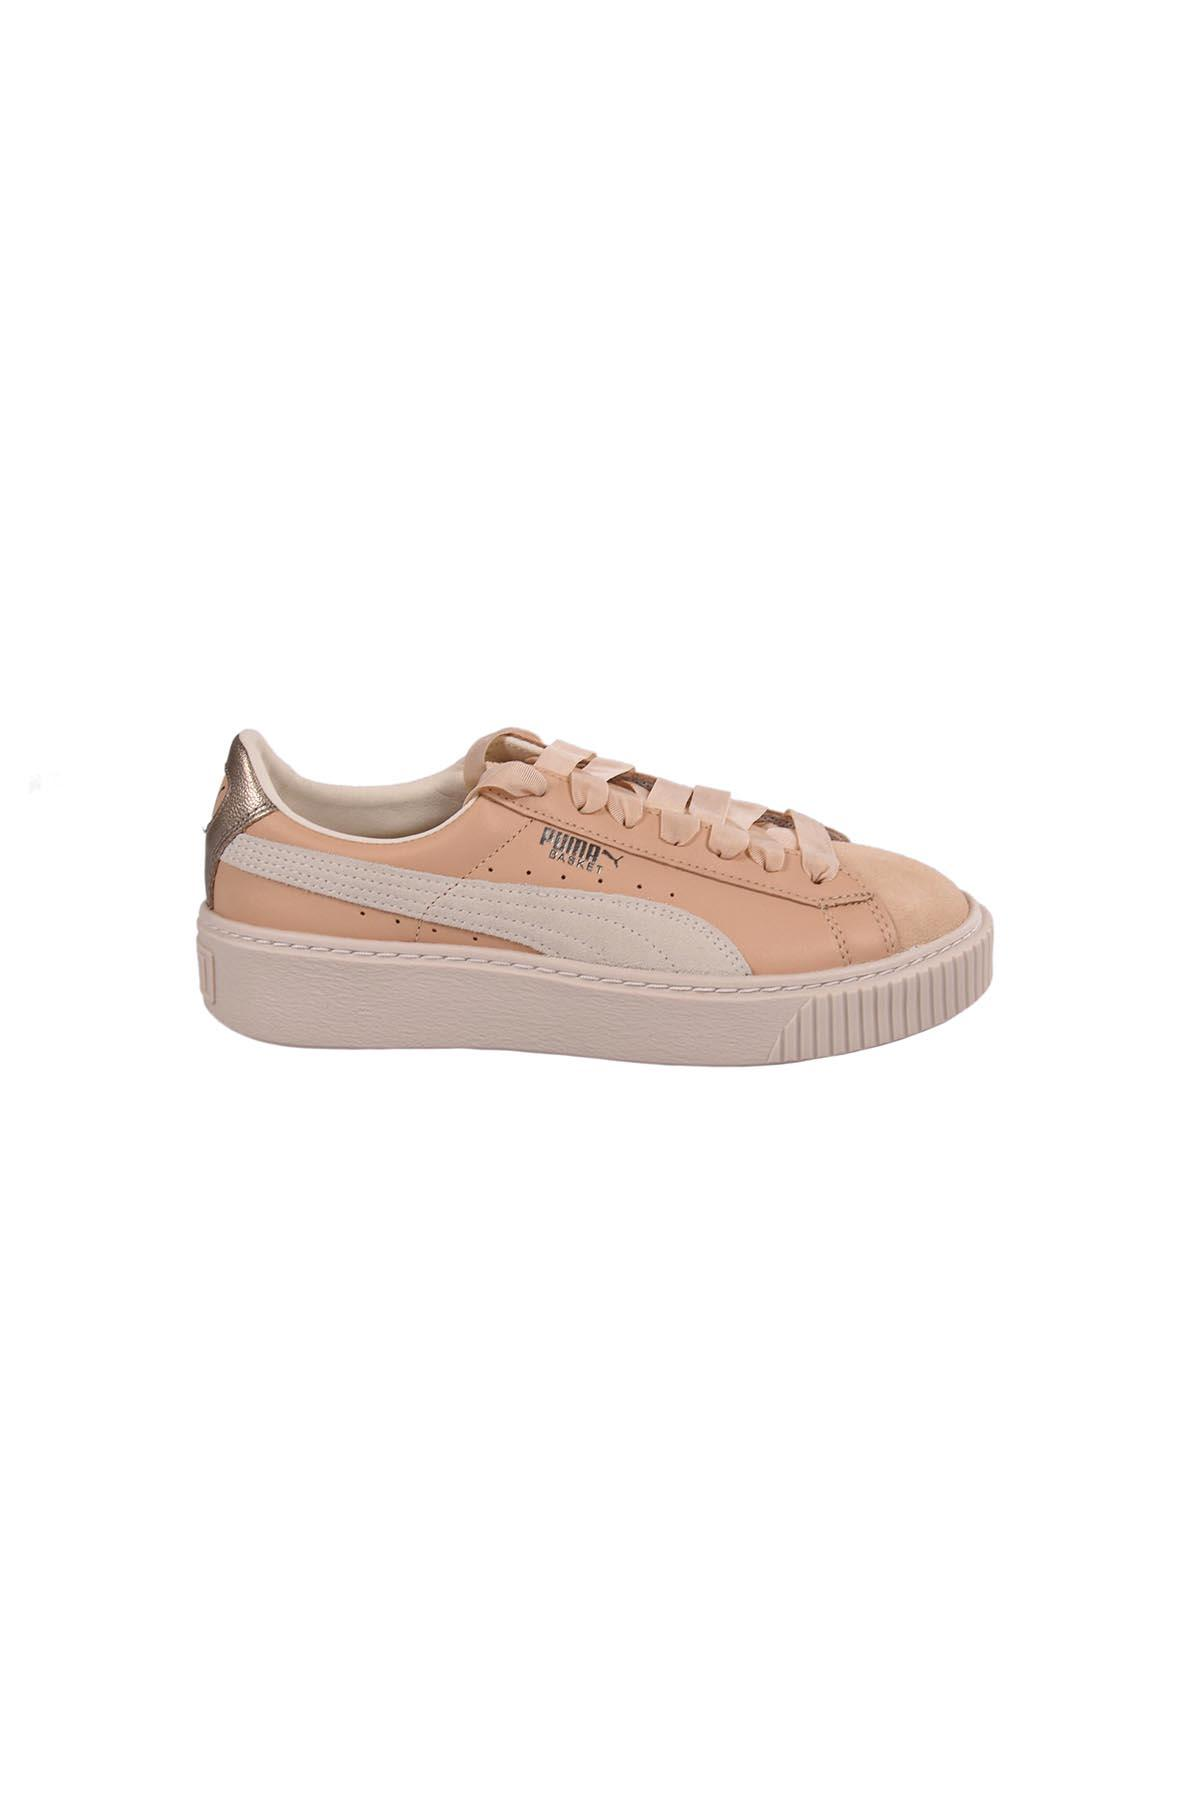 Puma Platform Prem Wns Sneakers In Natural Vacchetta-birch